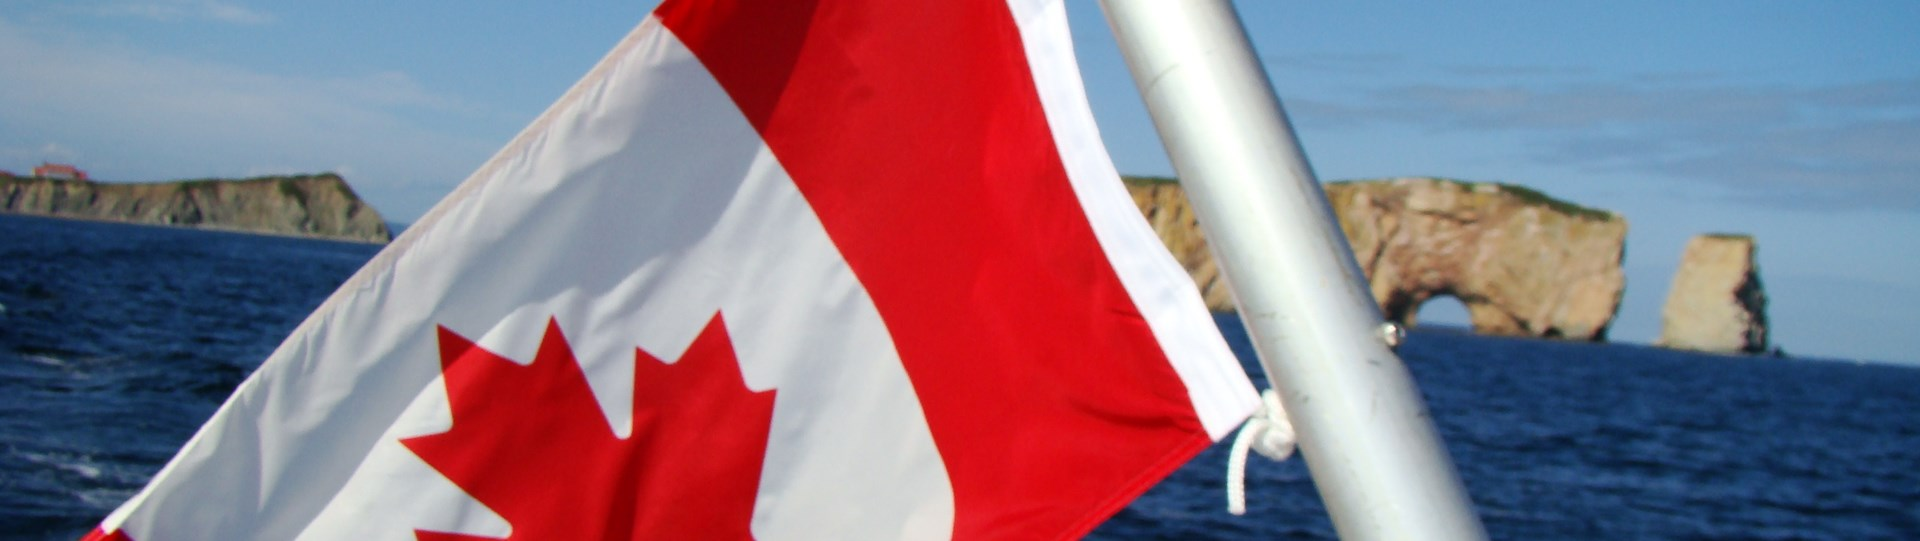 Canada – Oost-Canada